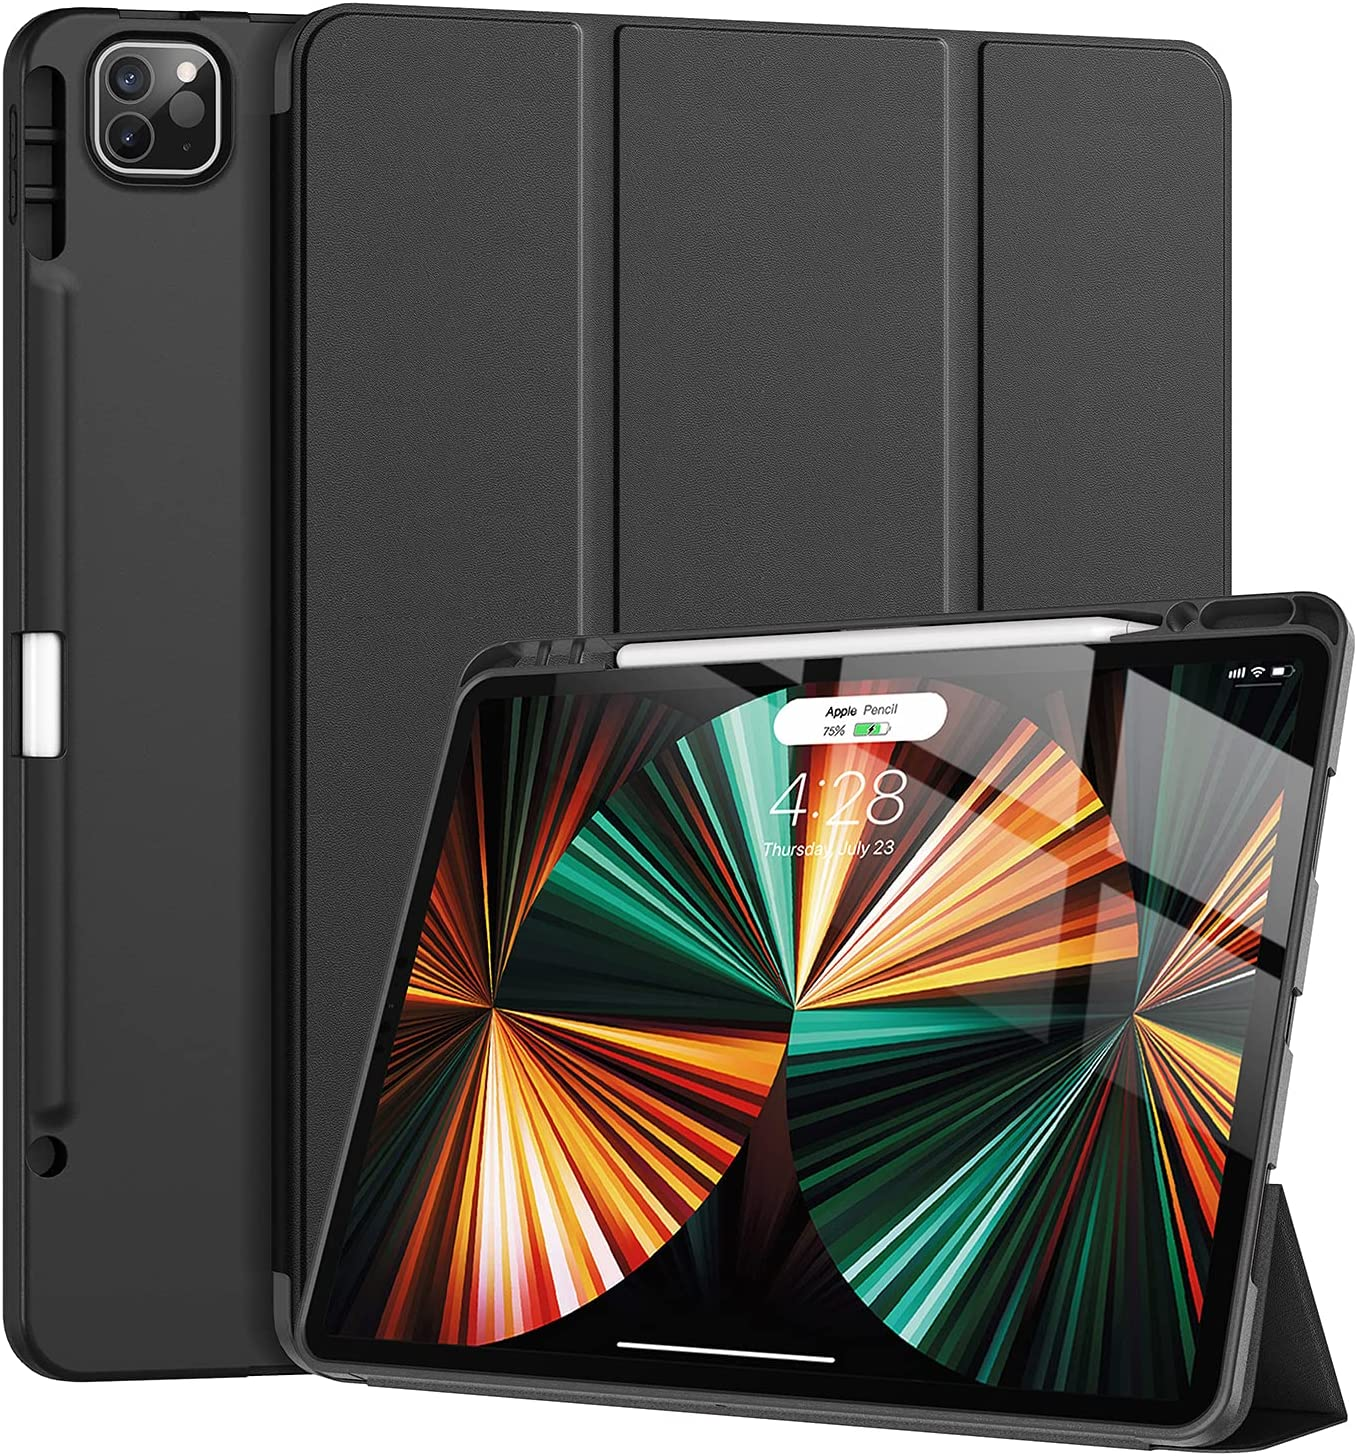 Tuosake iPad Pro 12.9 inch Case 2021 5th Generation with Pencil Holder,Slim Lightweight Trifold Stand Case【Pencil Charging+Auto Sleep/Wake】 Soft TPU Back Cover for New iPad Pro 12.9 2021 -Black